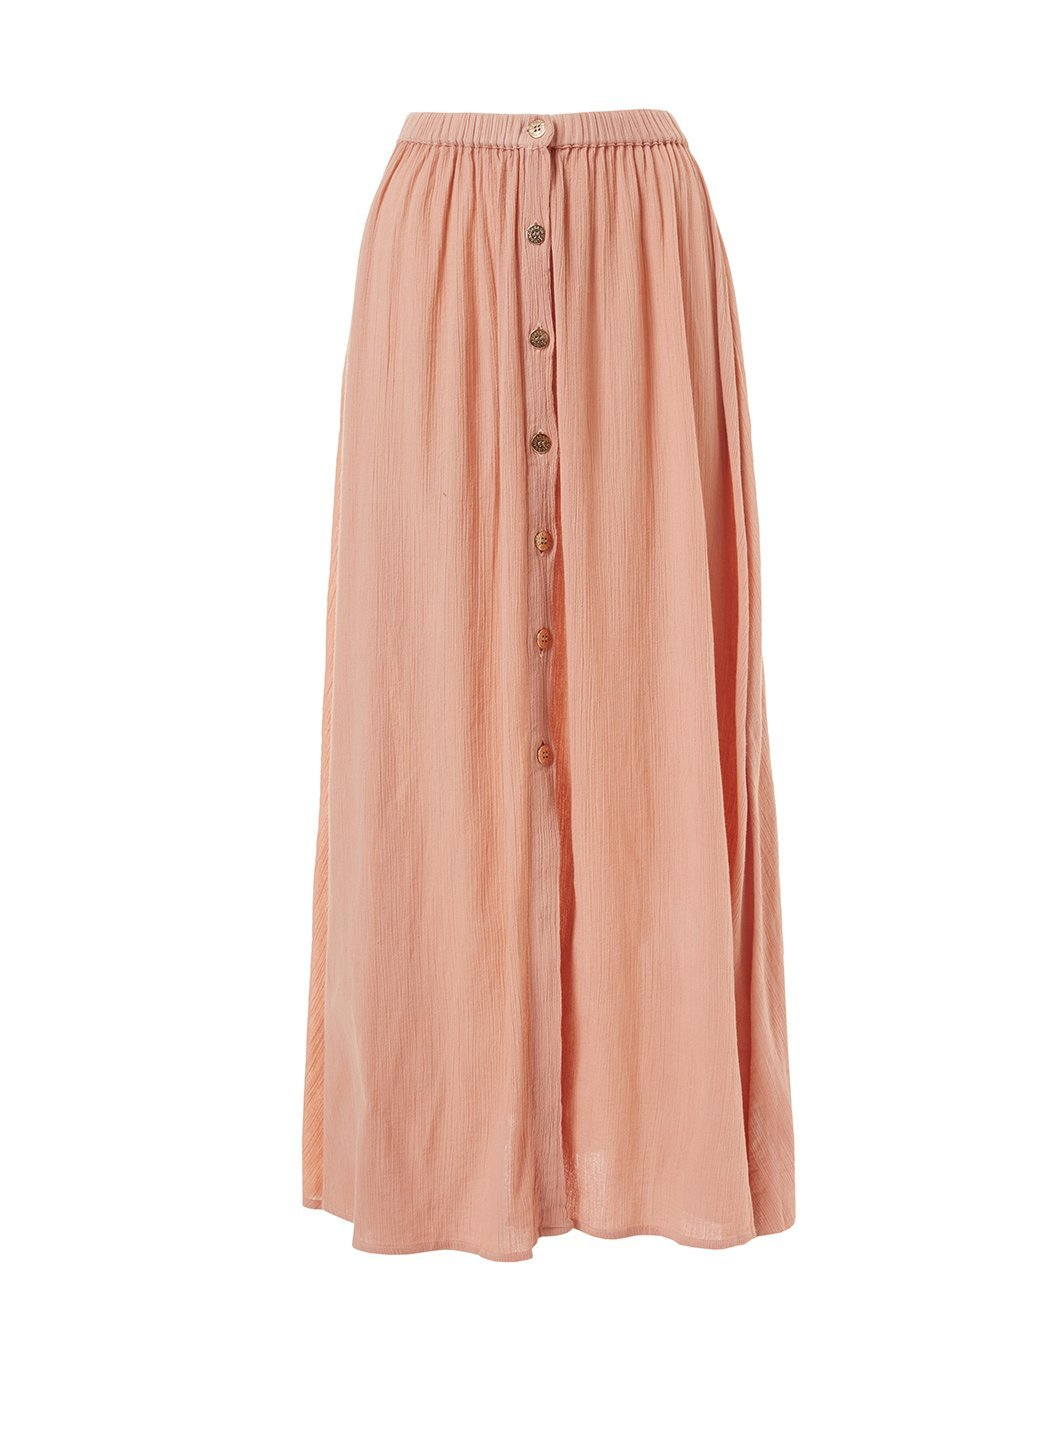 dru tan button down maxi skirt 2019